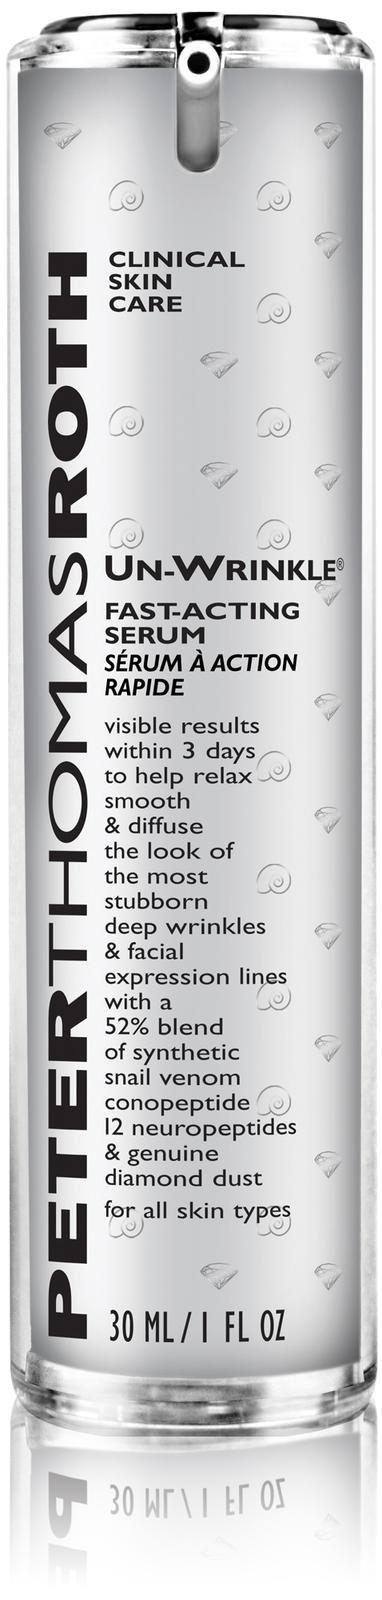 Peter Thomas Roth Unwrinkle Fast Acting Serum